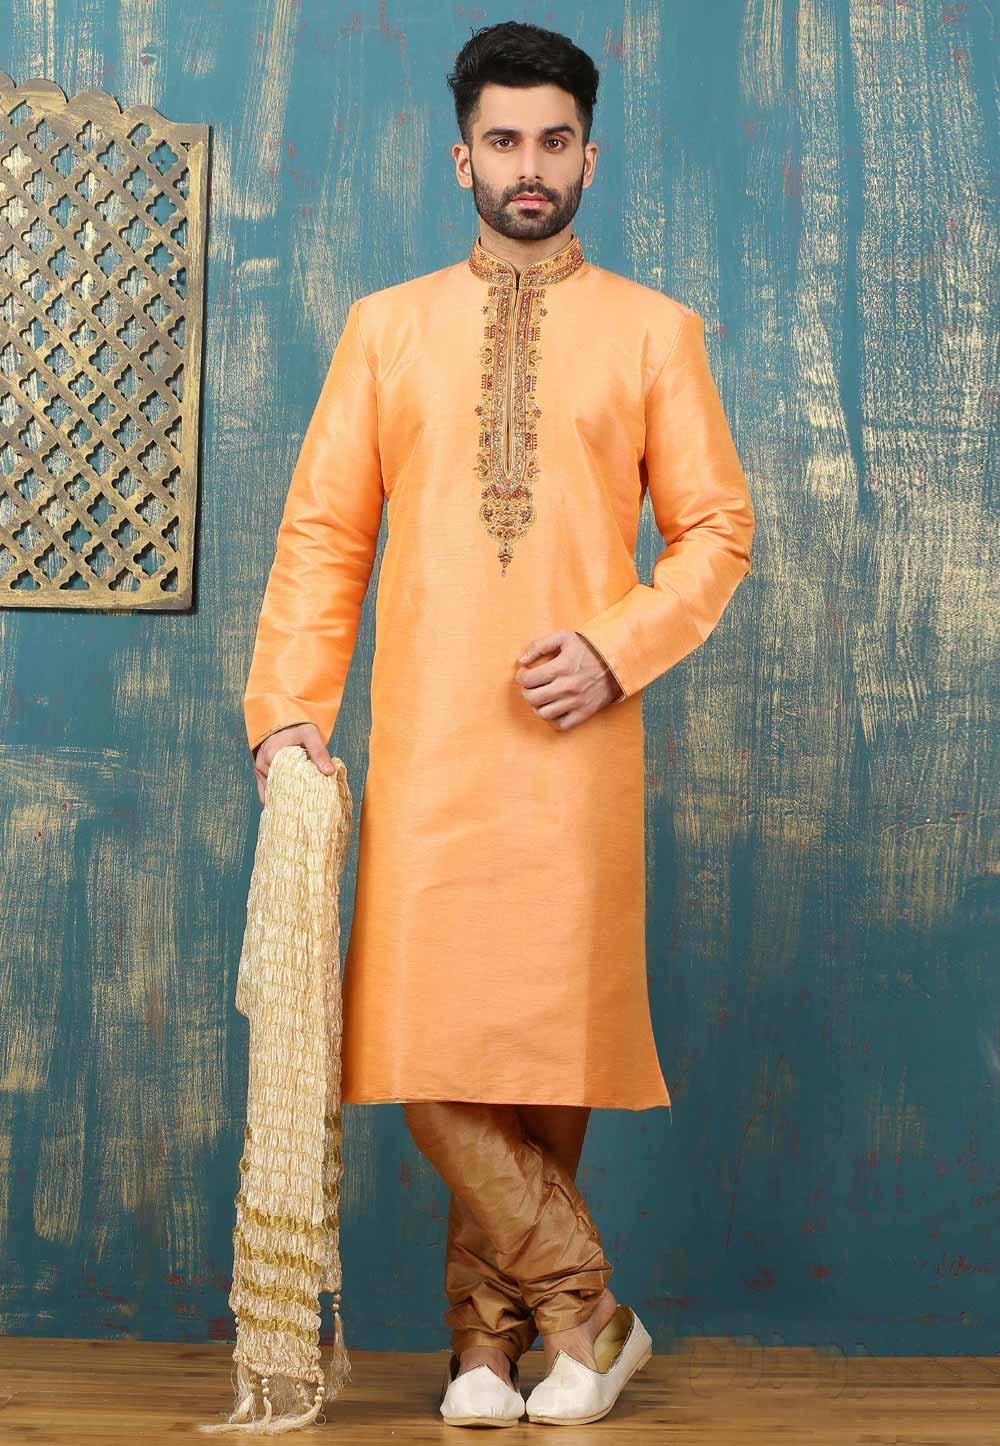 Peach Color Men's Dupion Art Silk Readymade Kurta Pajama.